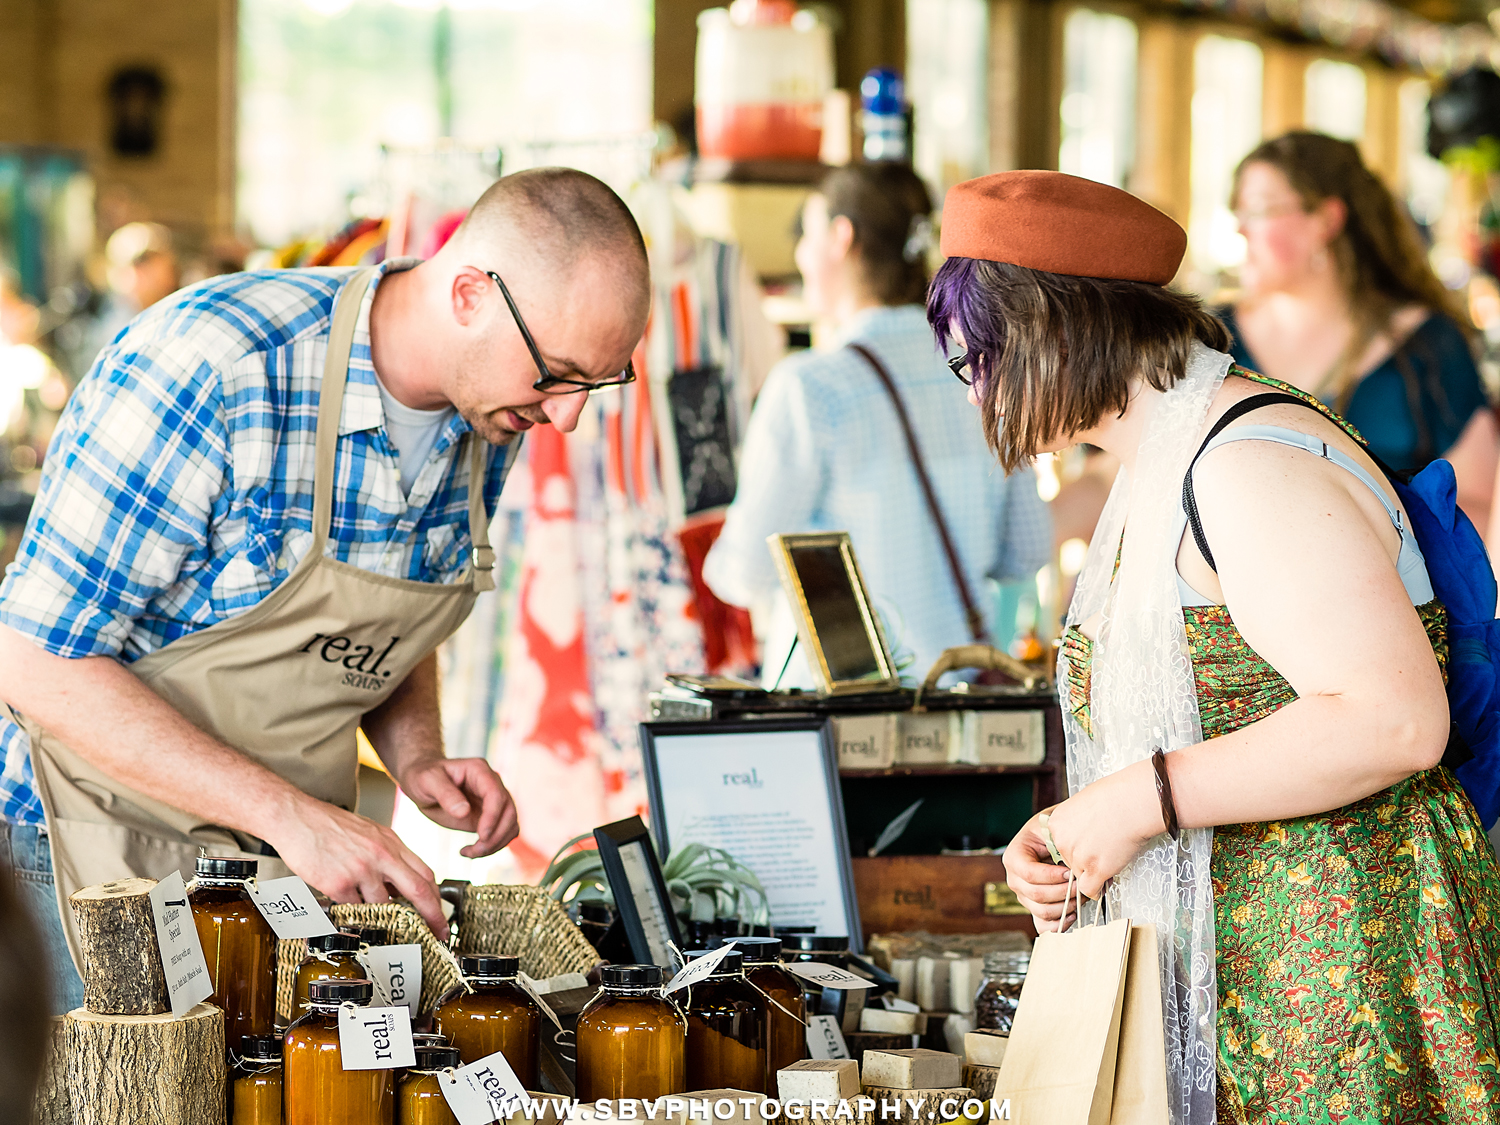 A shopper purchases Real Soap at the Hunt and Gather pop up market.